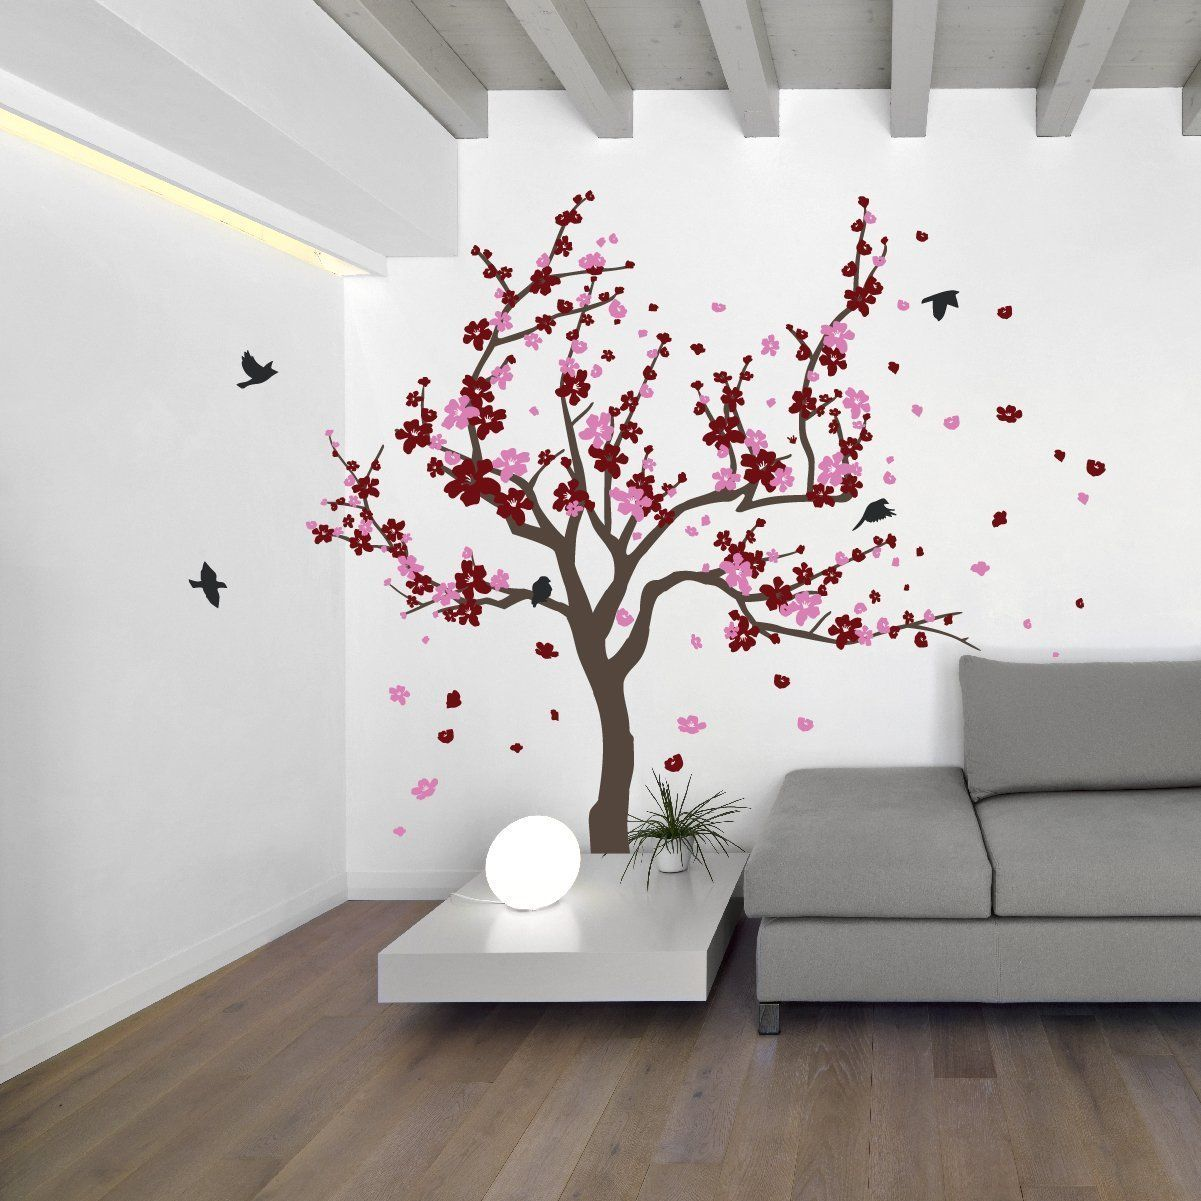 Japanese Cherry Blossom Tree And Birds Wall Decal Sticker For - Diy wall decor birds